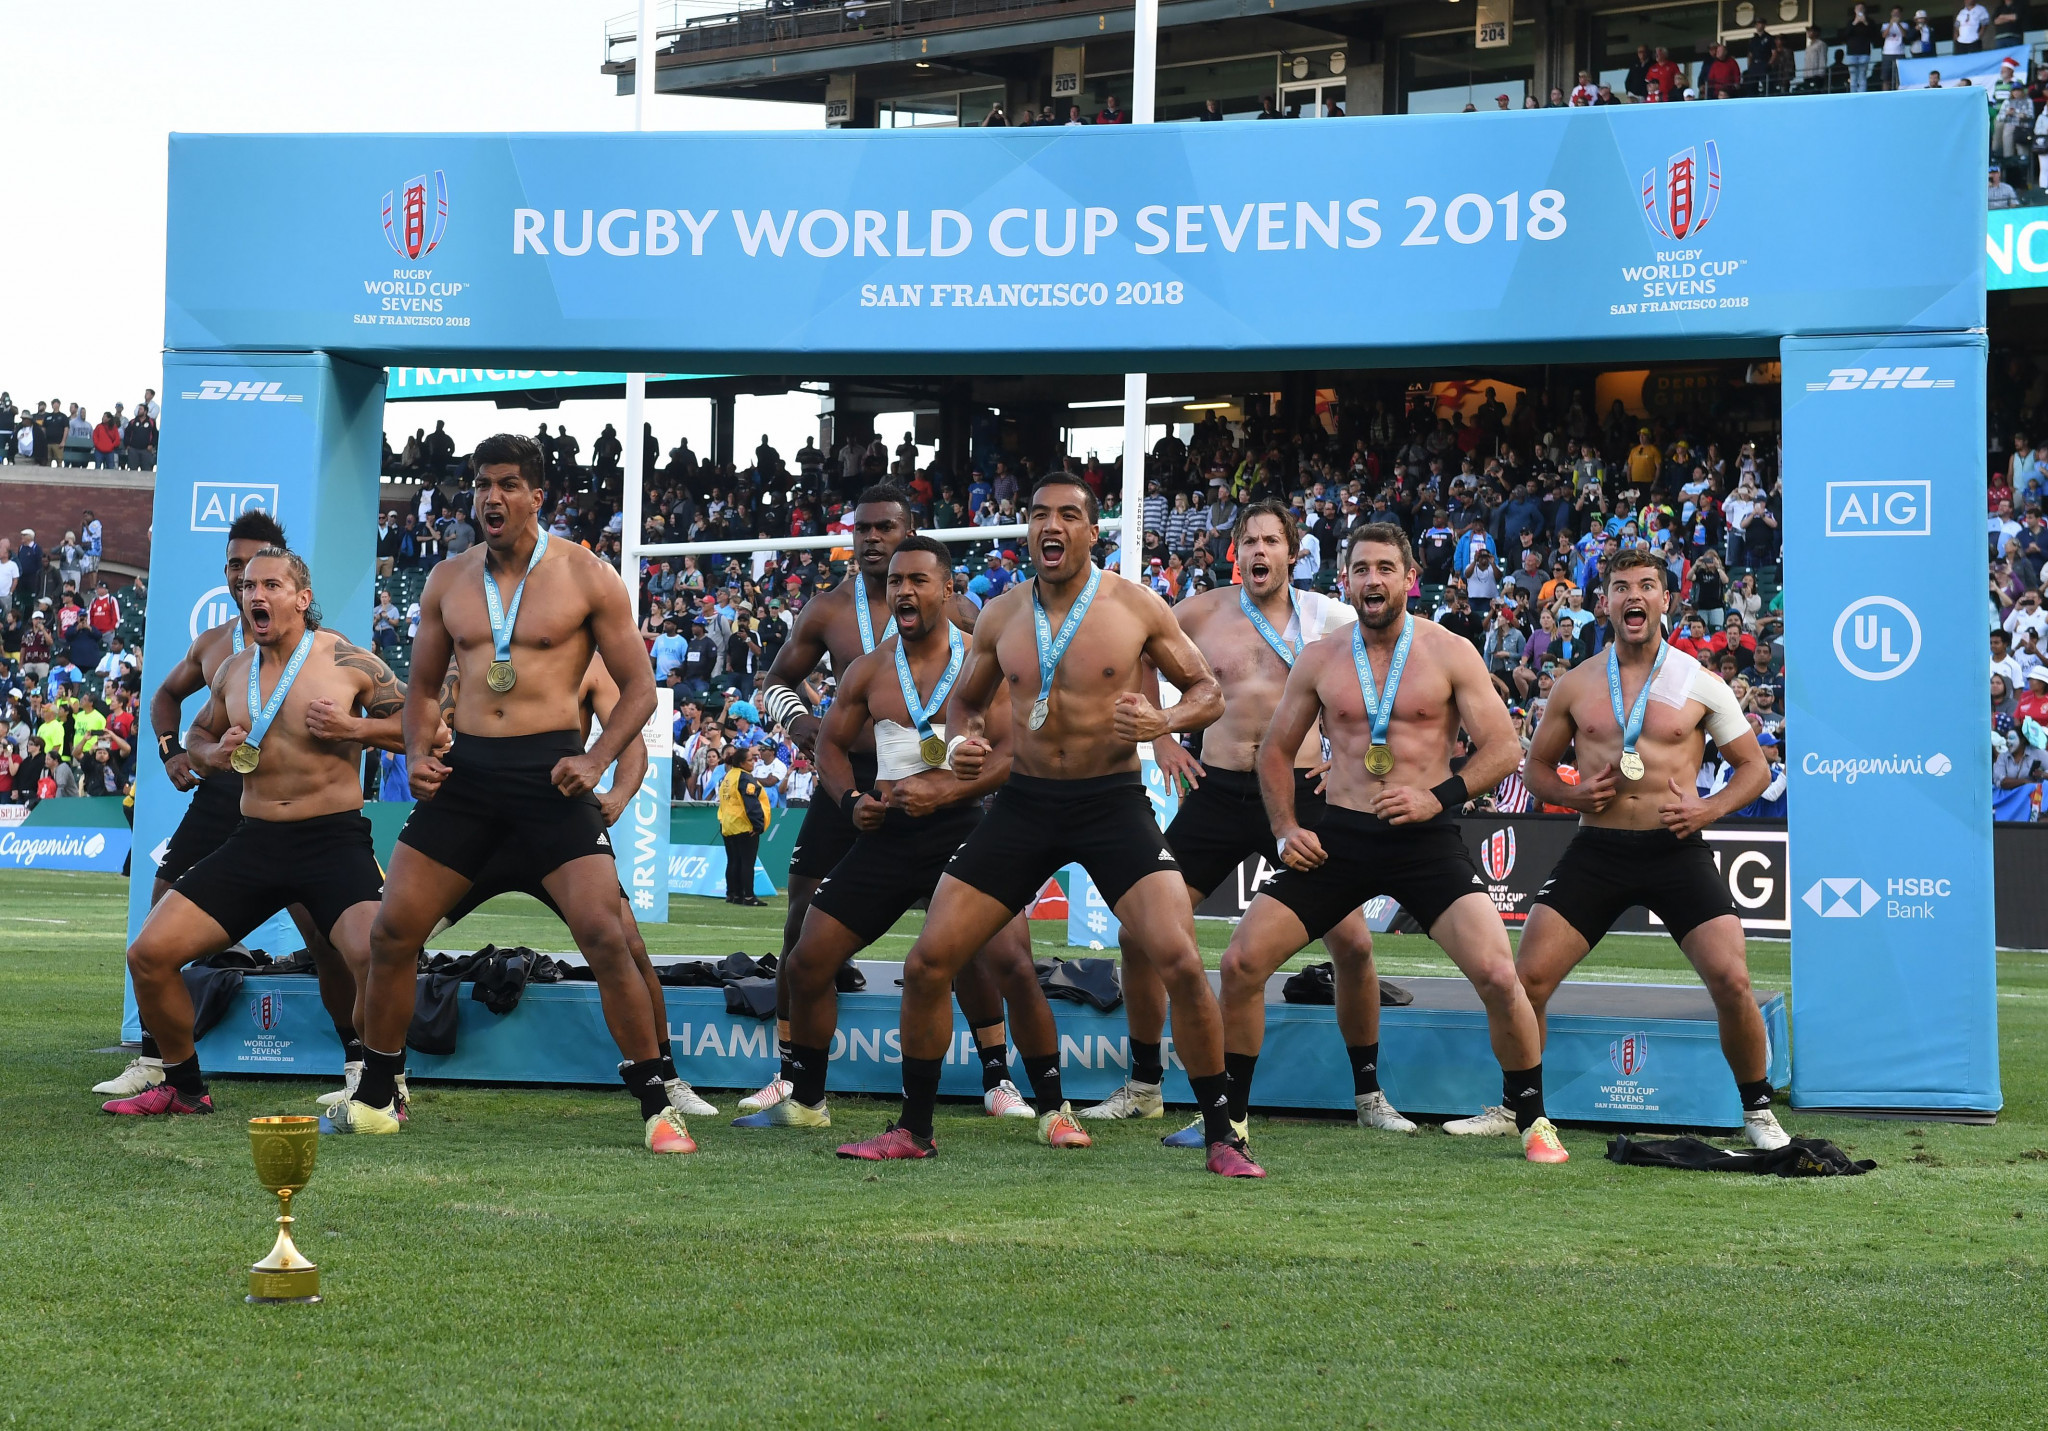 A record US television audience of nine million people watched the Rugby World Cup Sevens in San Francisco ©Getty Images